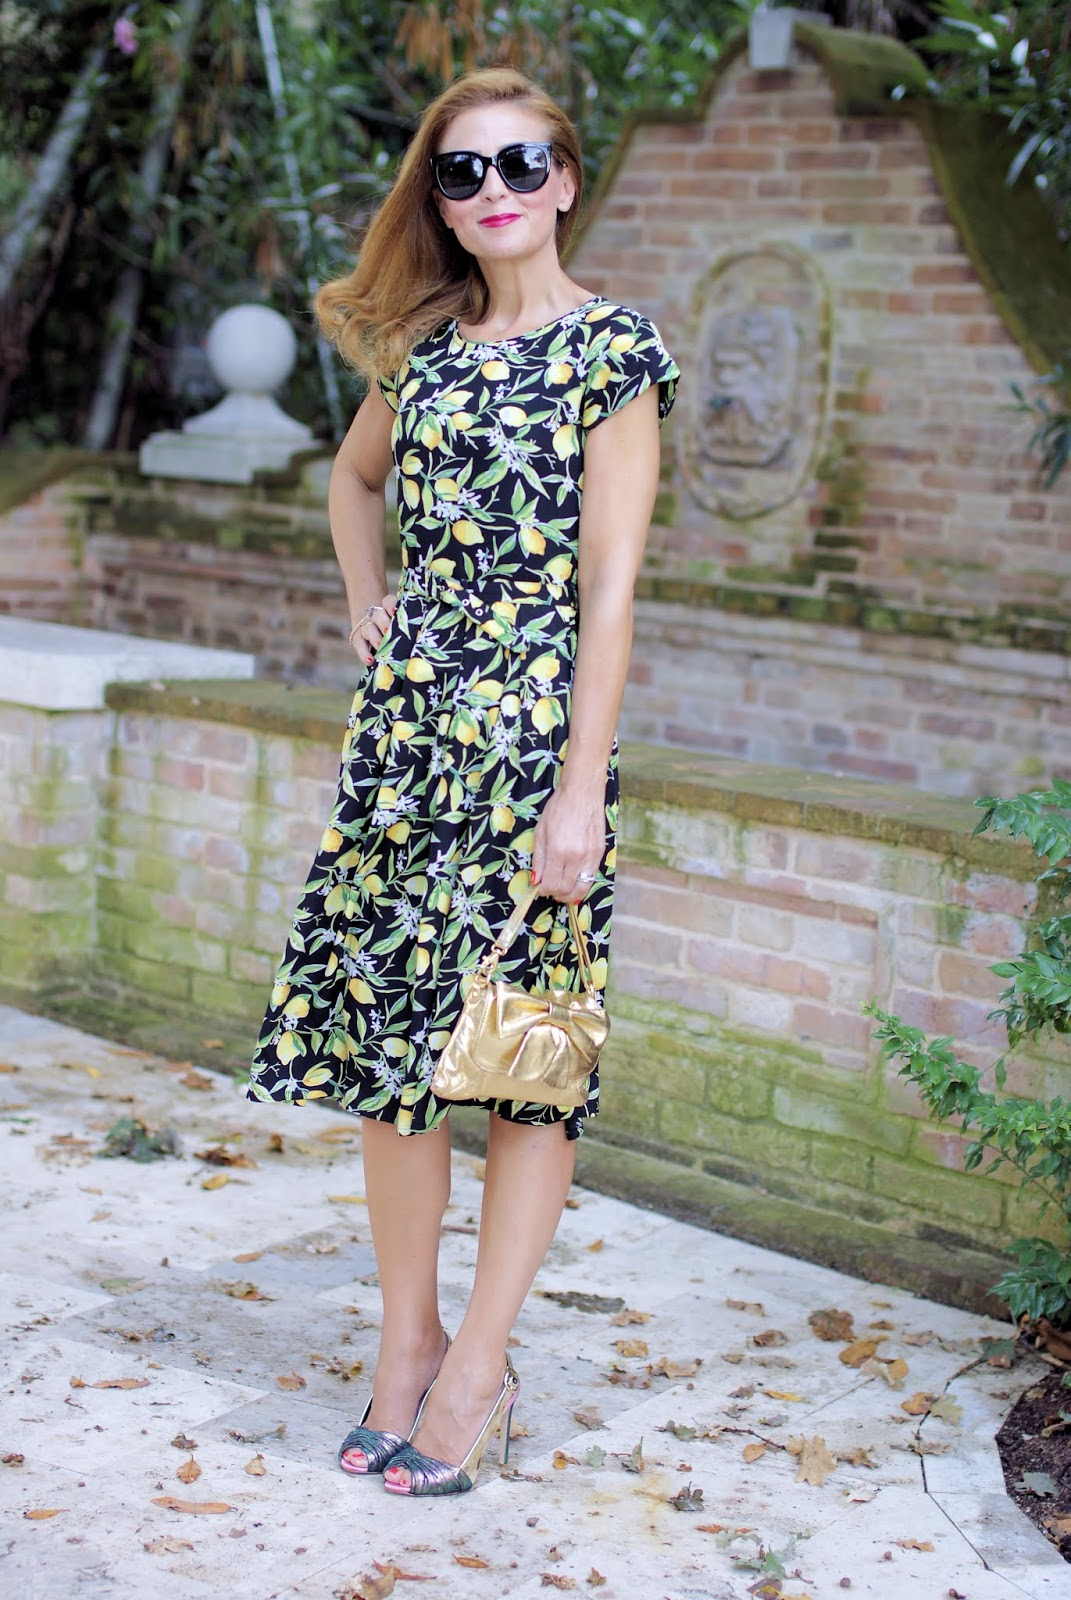 Lemon print dress for a ladylike outfit with Dolce & Gabbana style on Fashion and Cookies fashion blog, fashion blogger